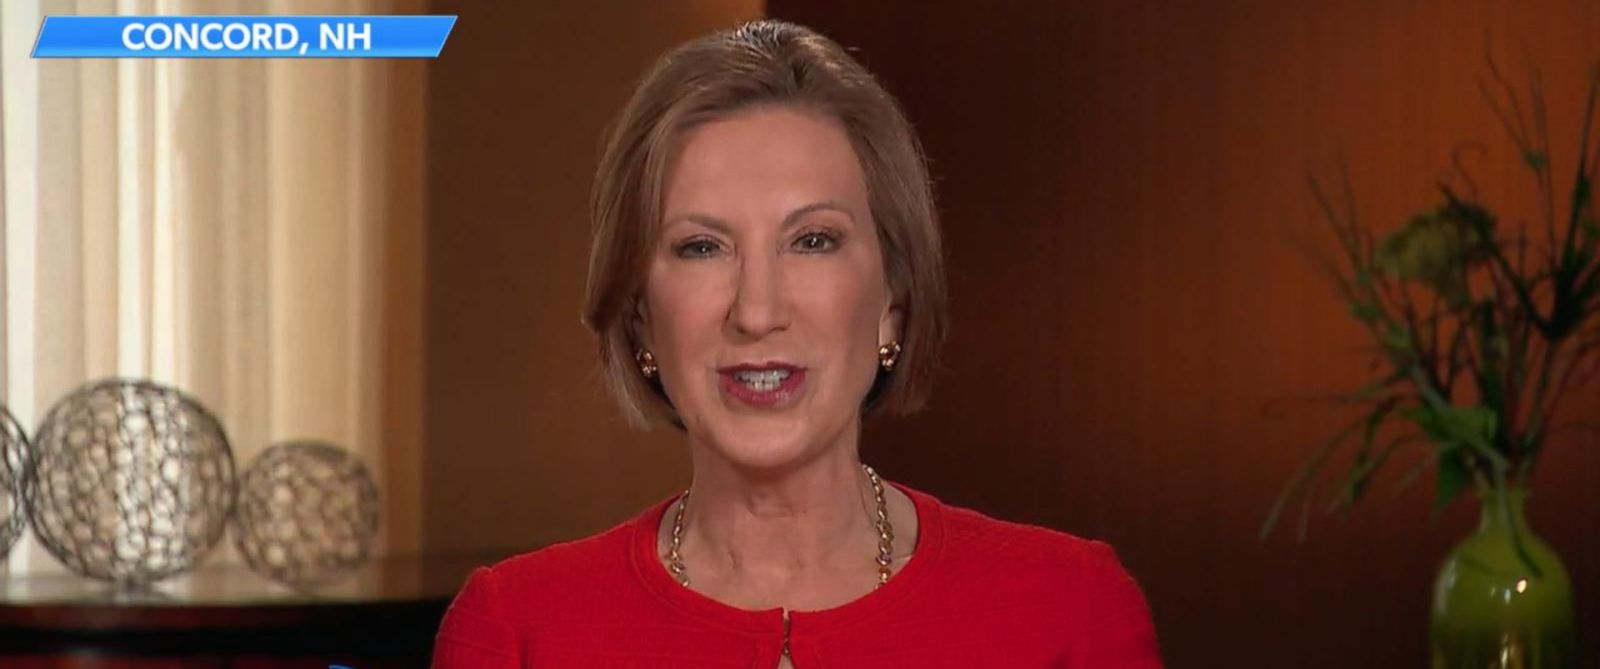 """PHOTO: Carly Fiorina appears on """"The View,"""" Nov. 6, 2015."""